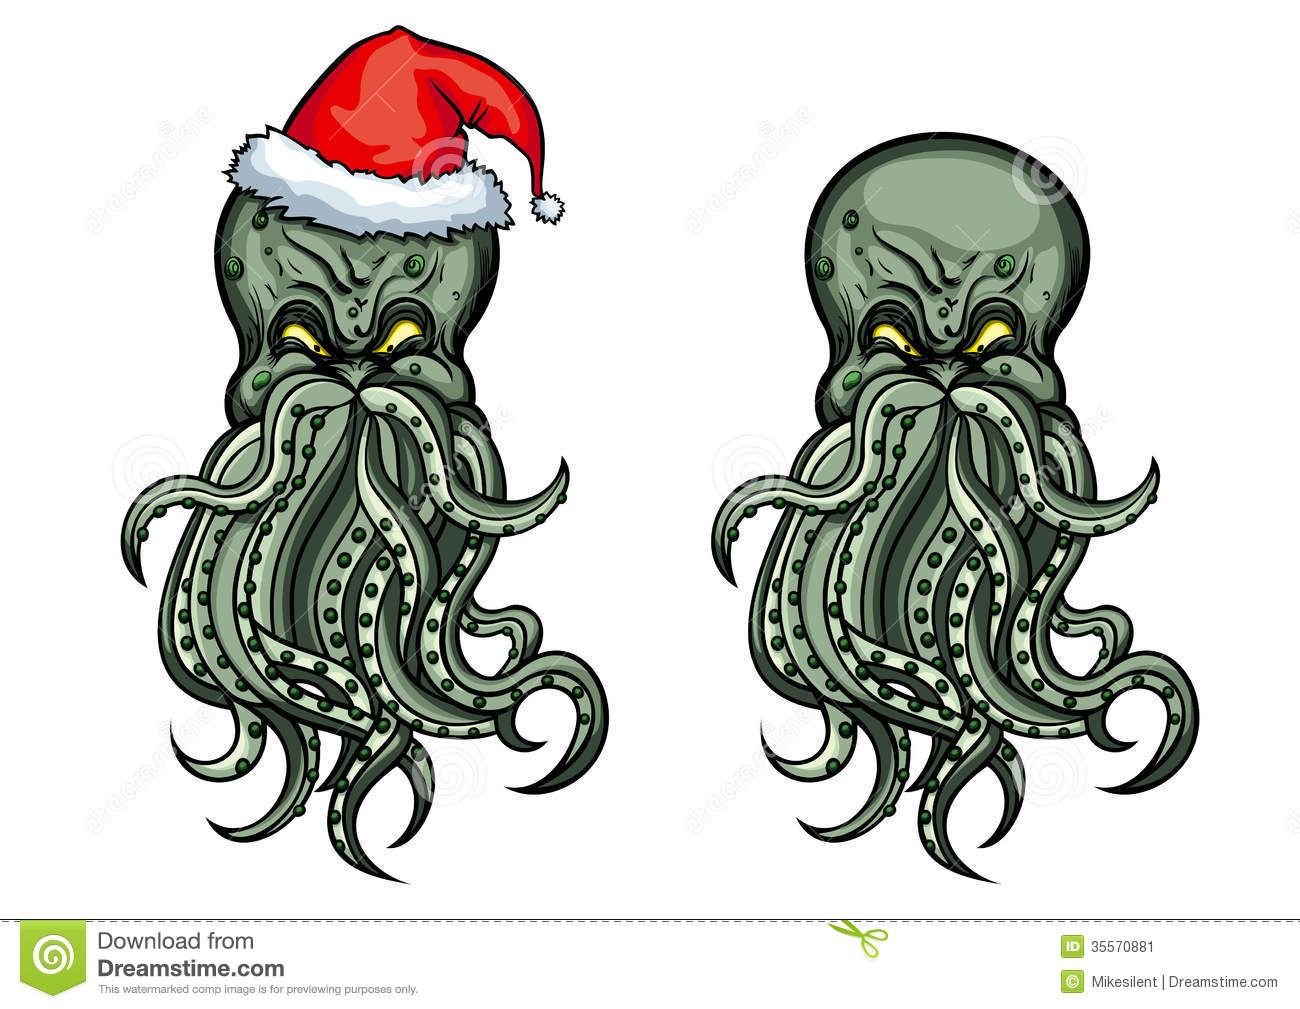 Evil octopus cartoon - photo#26